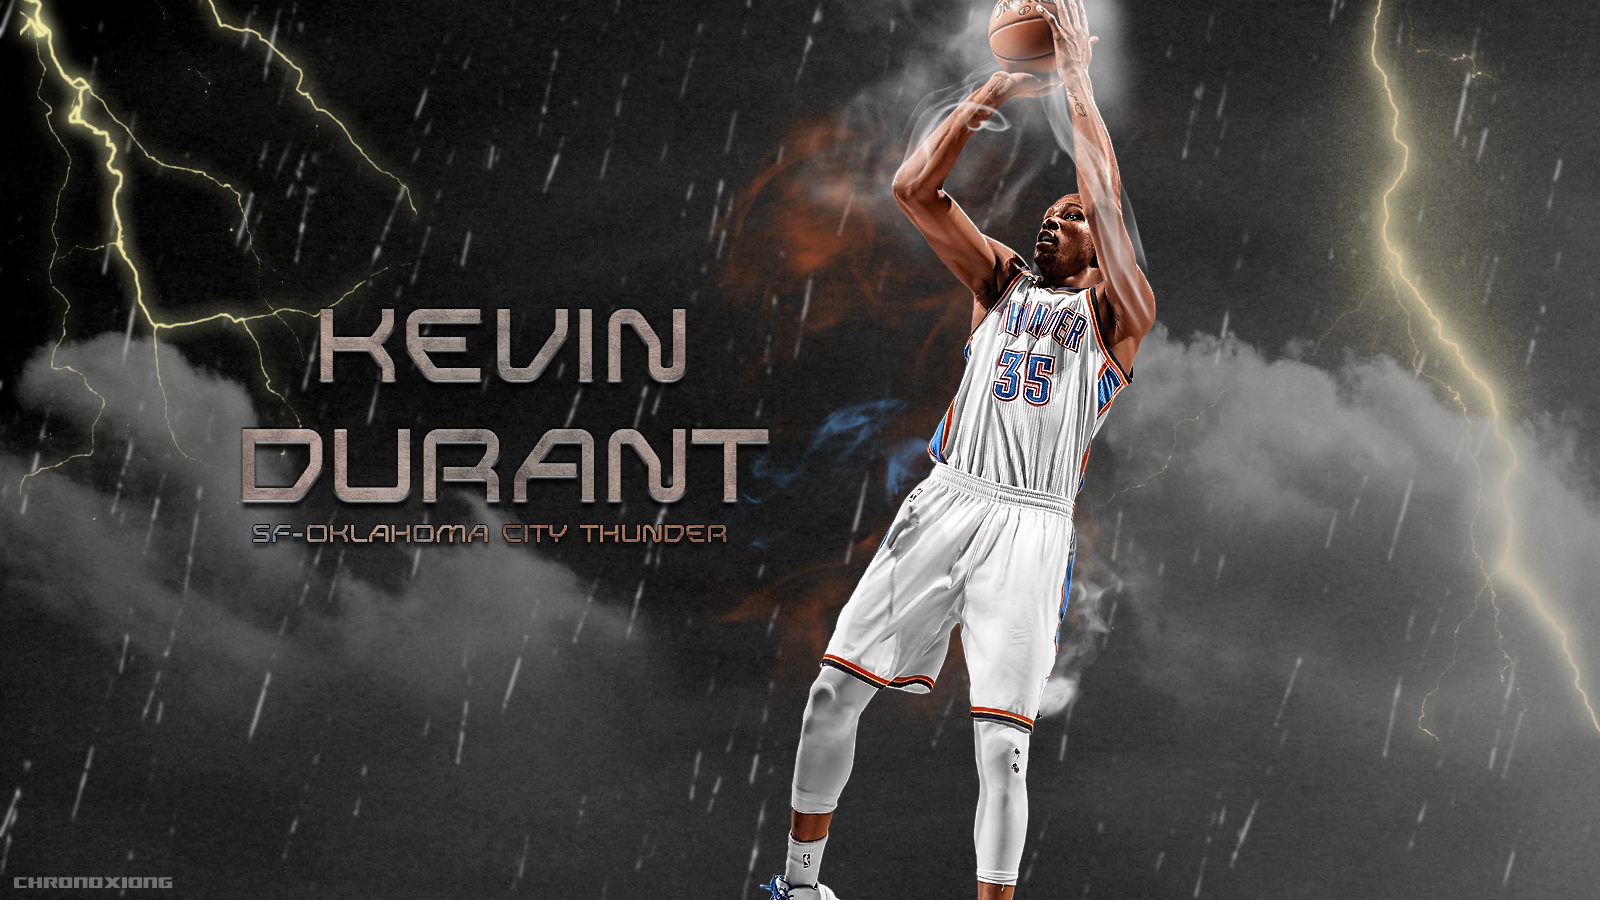 Kevin Durant Dunking Wallpaper 2017   2018 Best Cars Reviews 1600x900